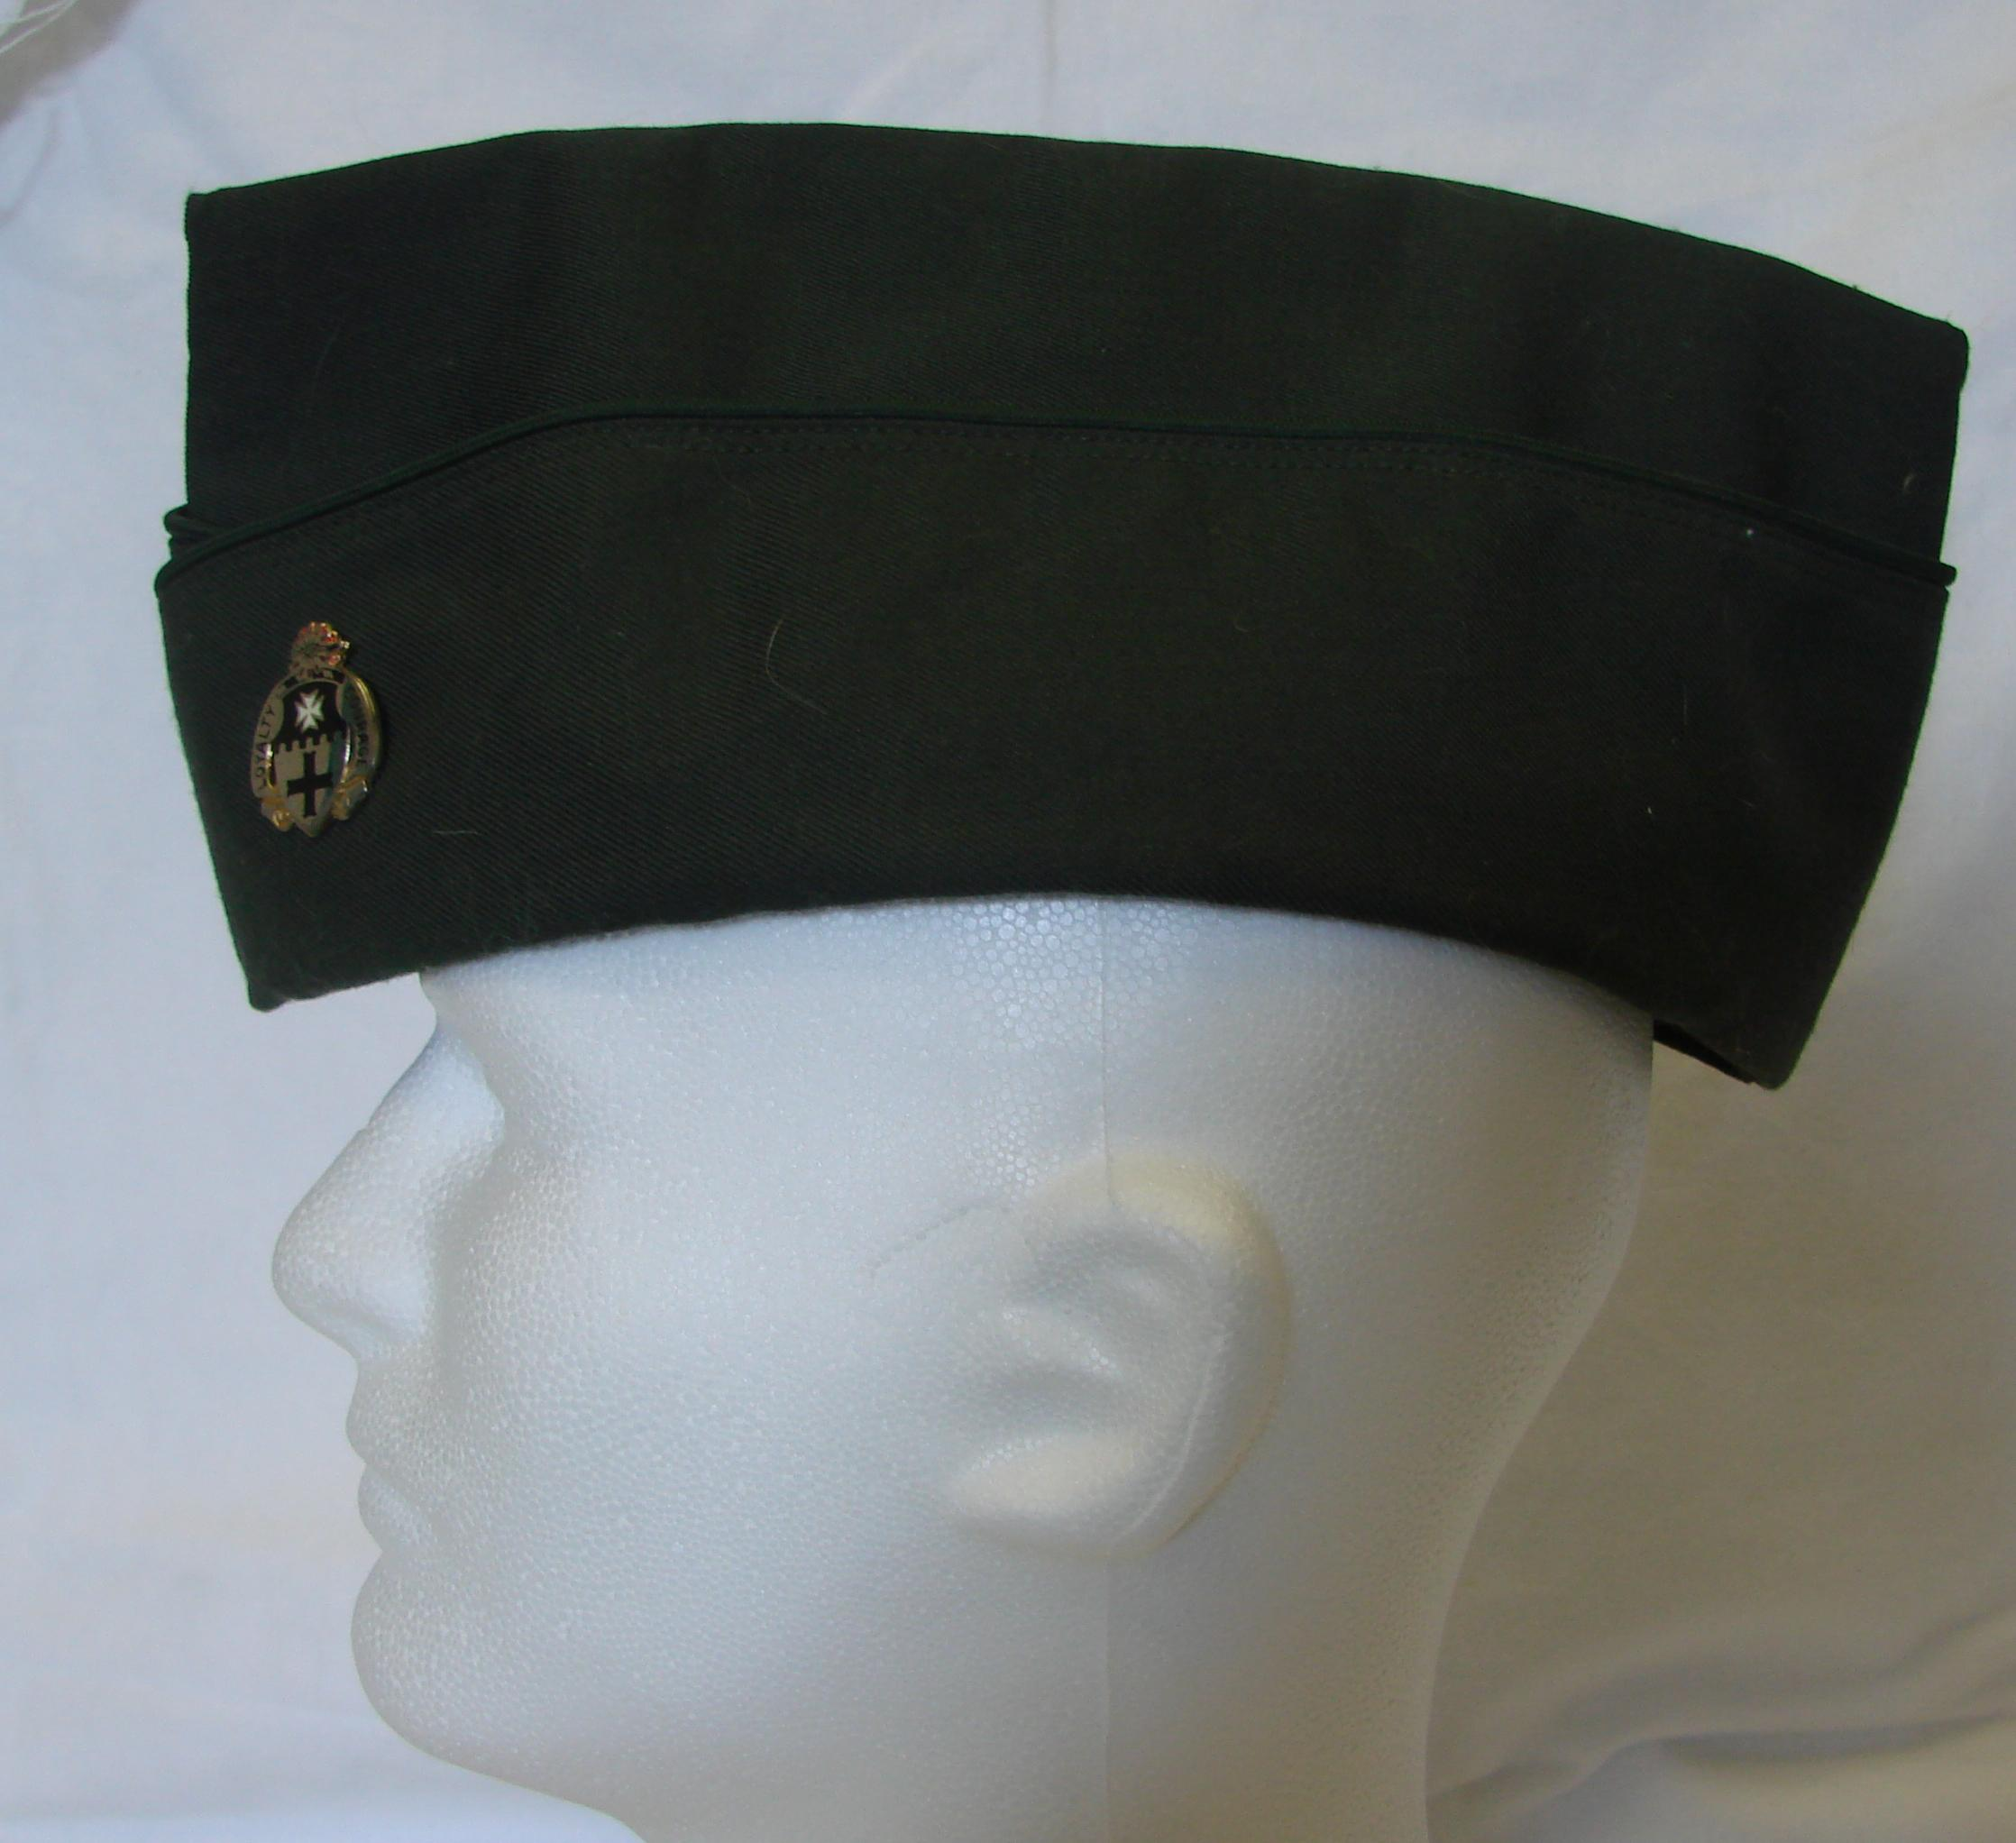 ... dependable service plus fast shipping vintage military uniform hat